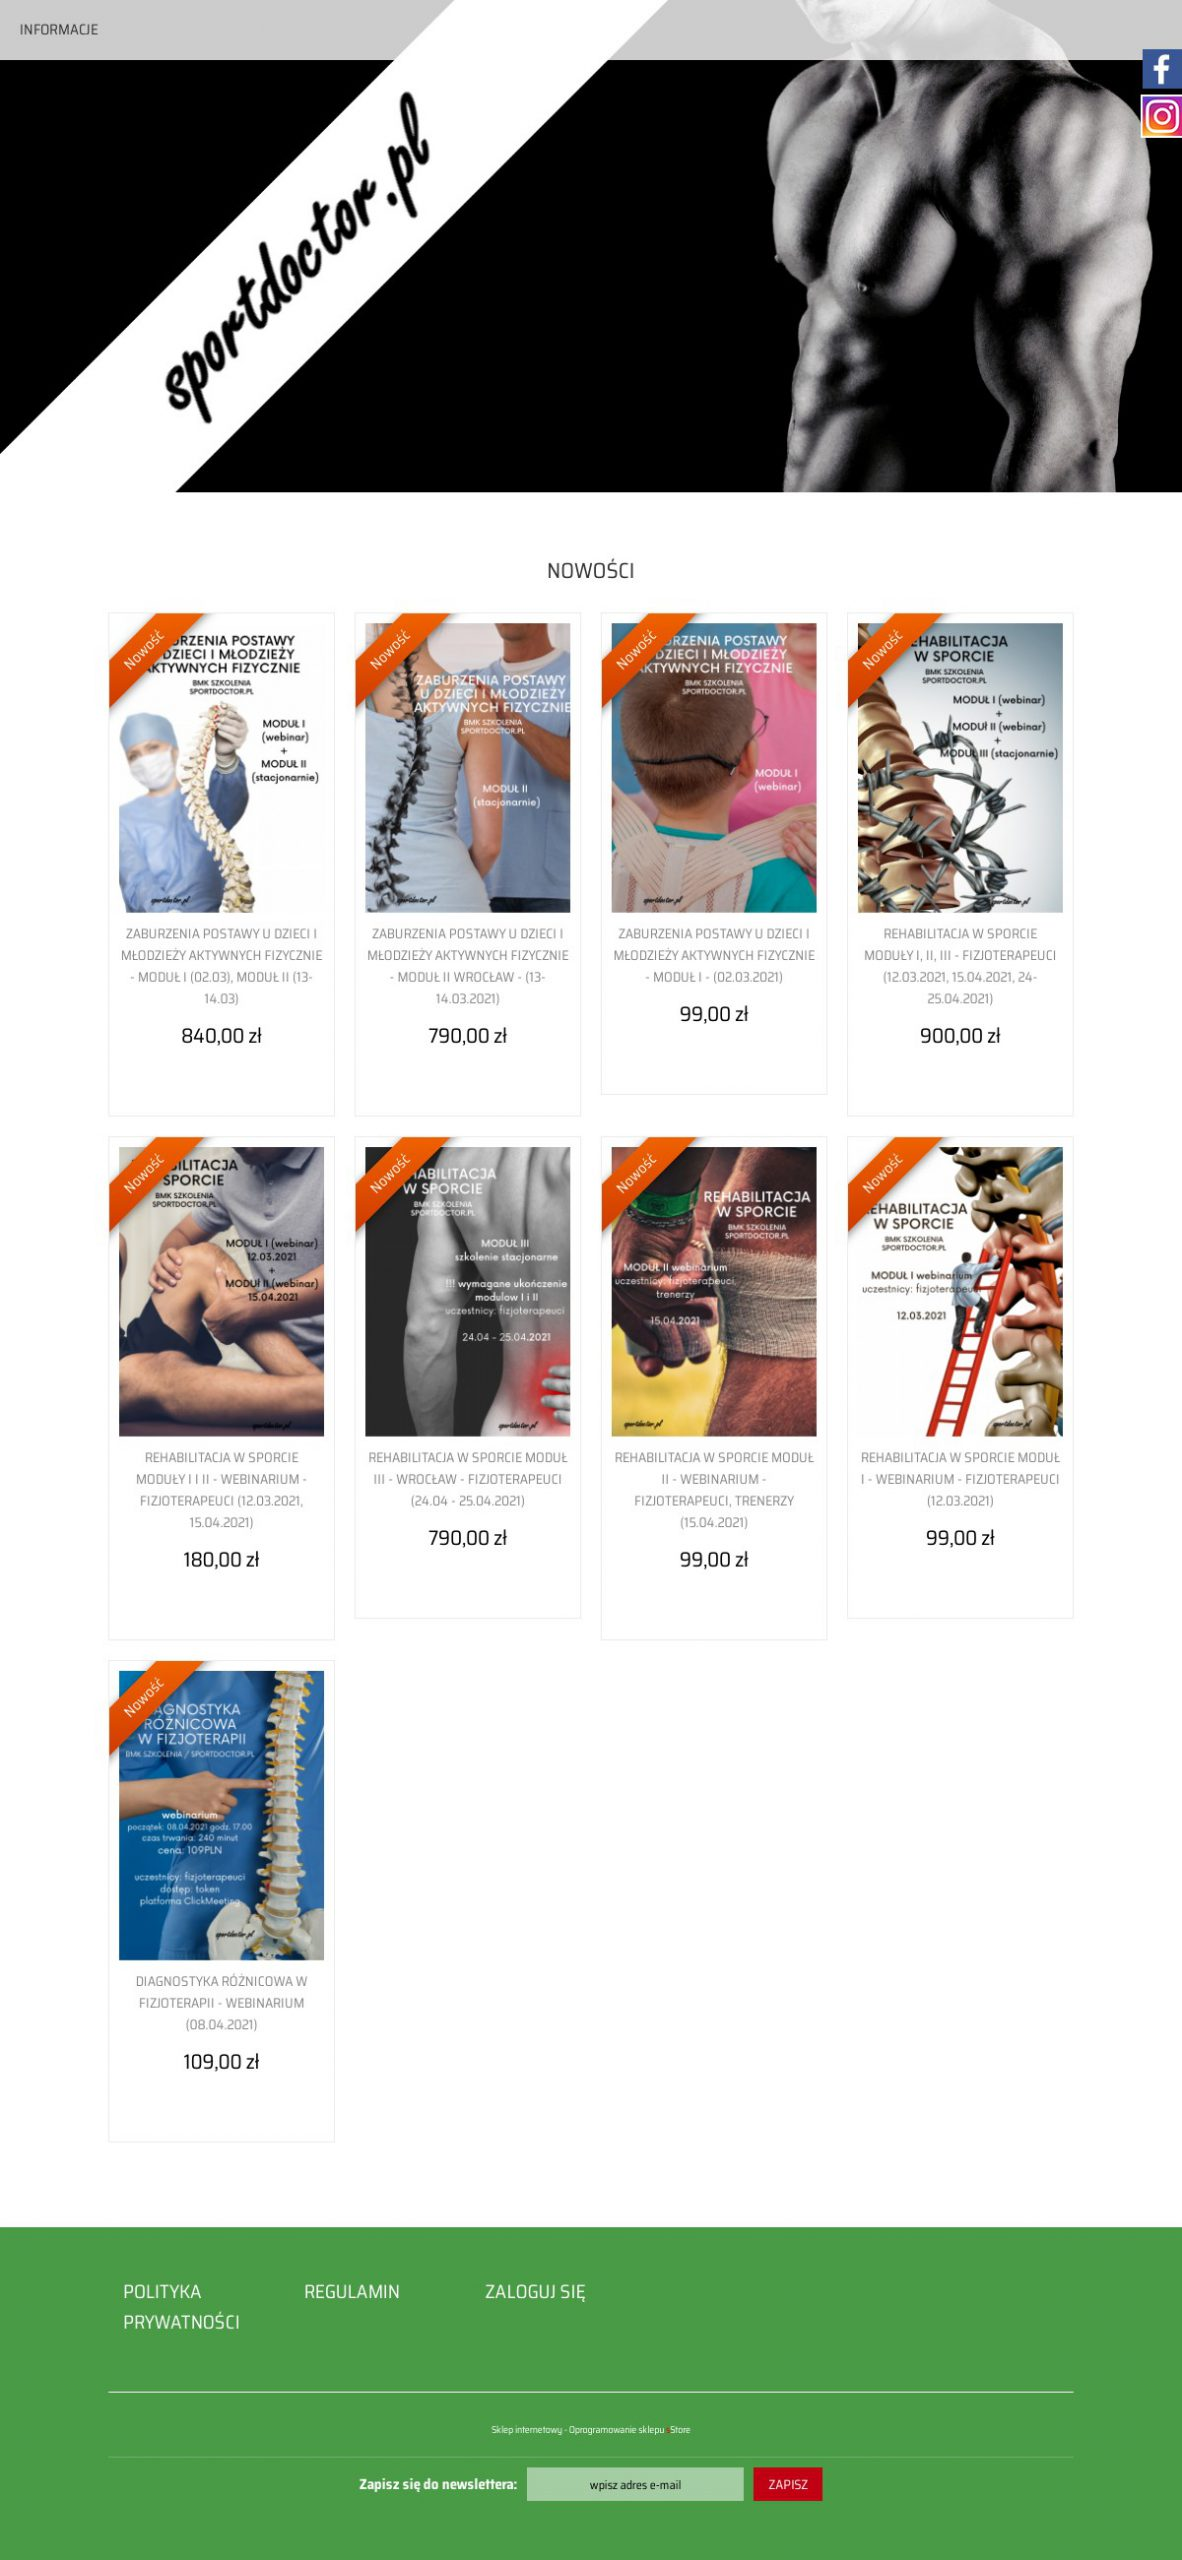 sportdoctor.sstore.pl Image